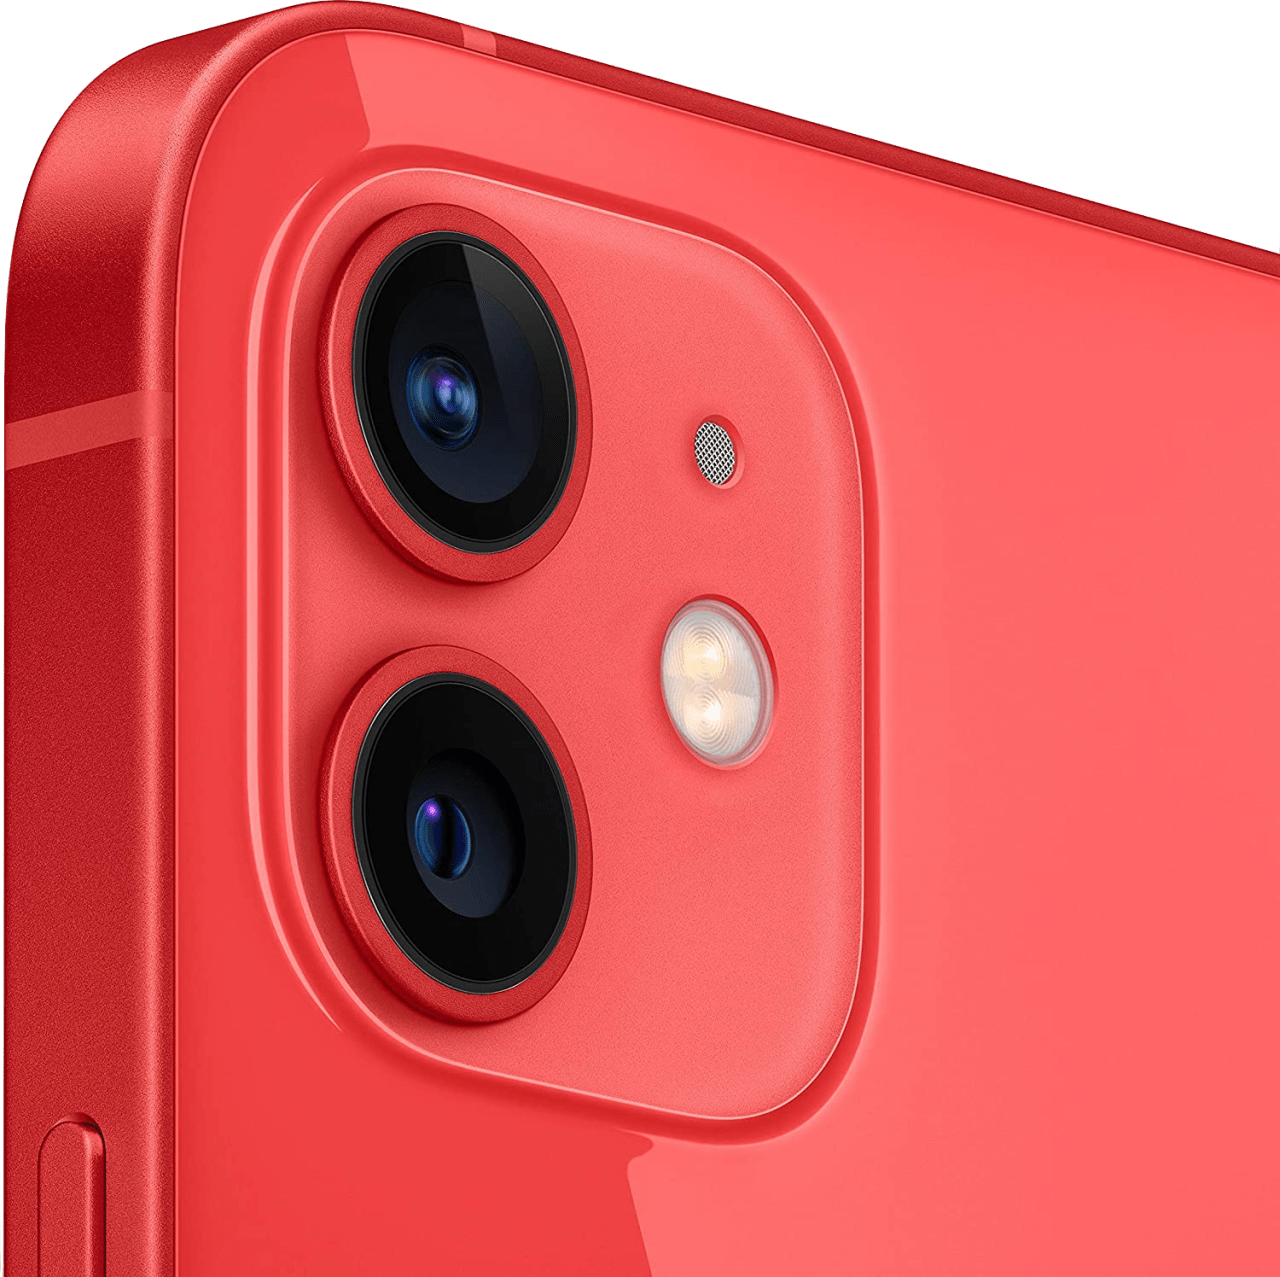 (Product)Red Apple iPhone 12 64GB.4